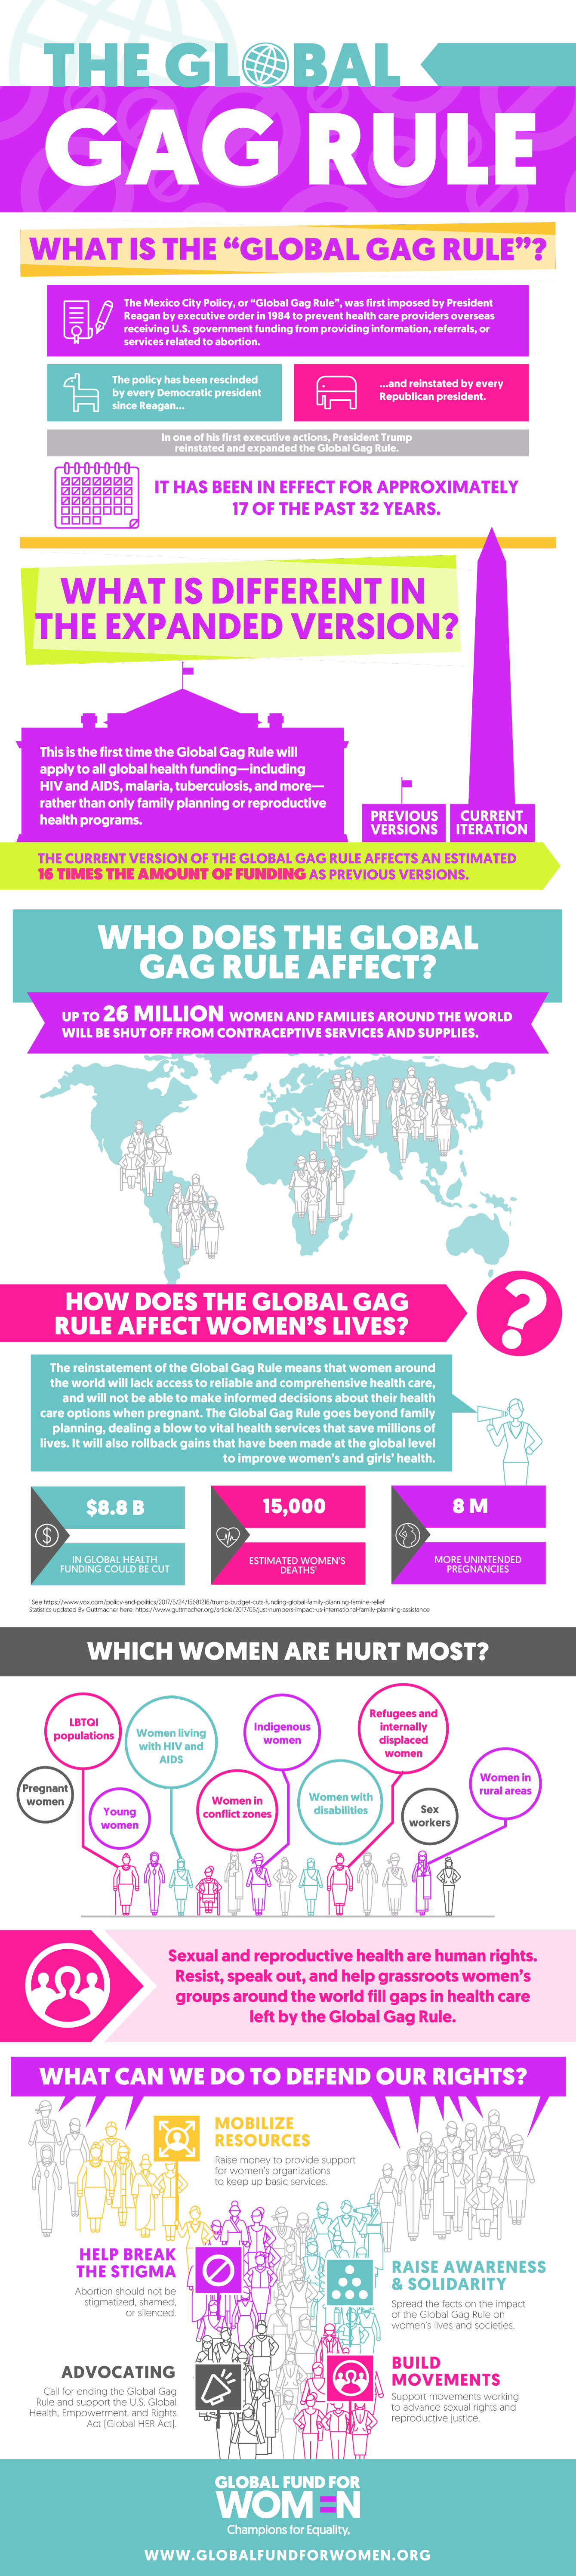 Infographic: What is a movement?